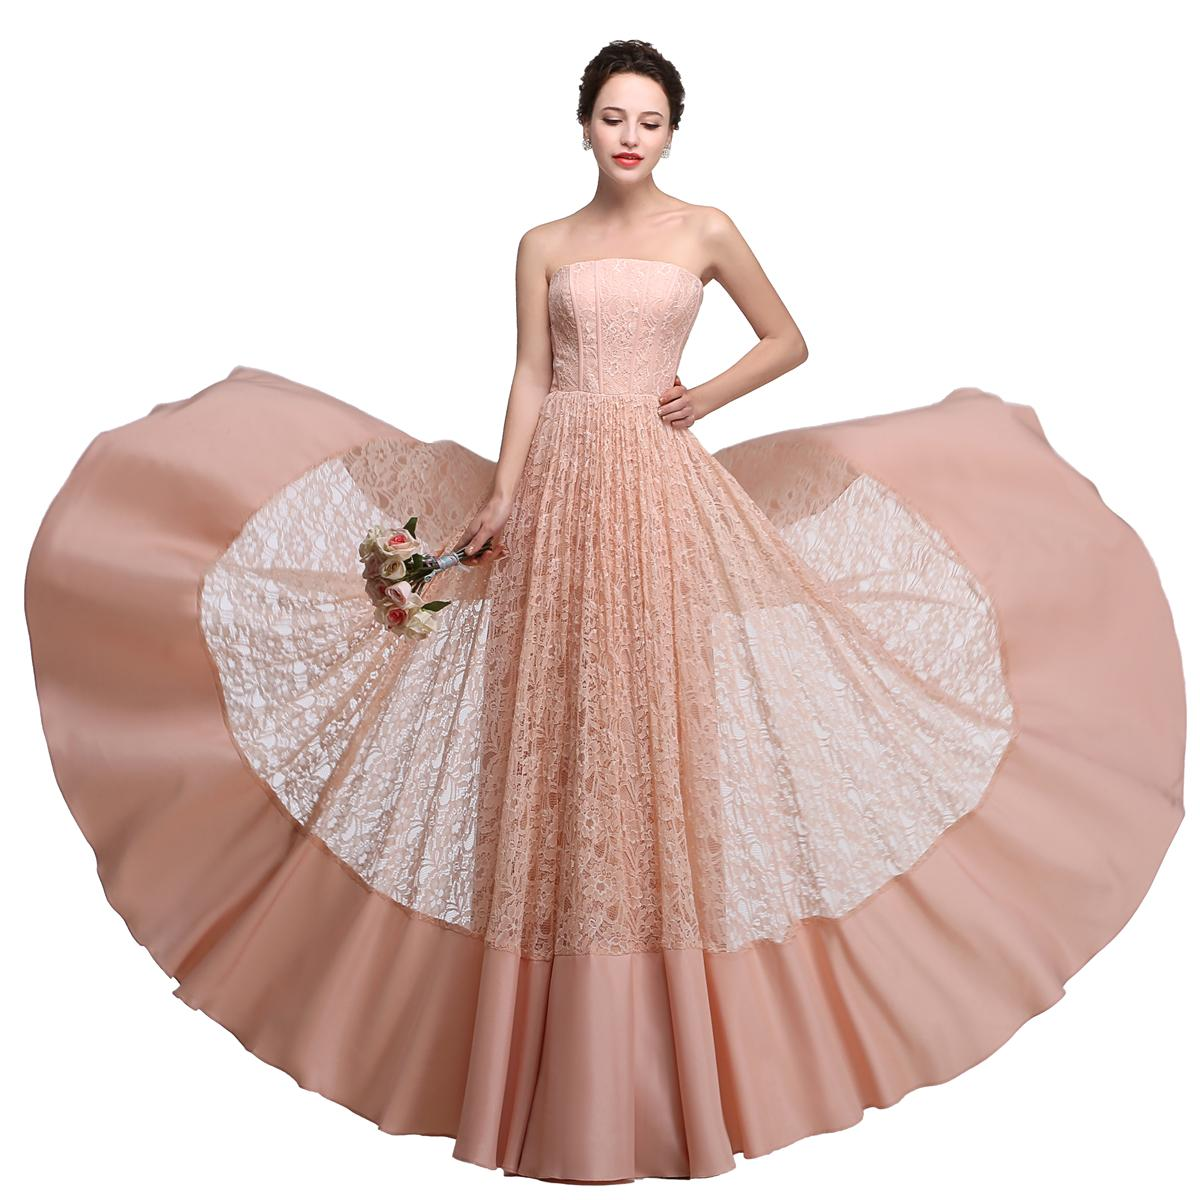 Lace long bridesmaid dresses cheap strapless pink coral bridesmaid lace long bridesmaid dresses cheap strapless pink coral bridesmaid dress formal for 2015 wedding dresses party evening beach maid of honor 2018 from ombrellifo Image collections